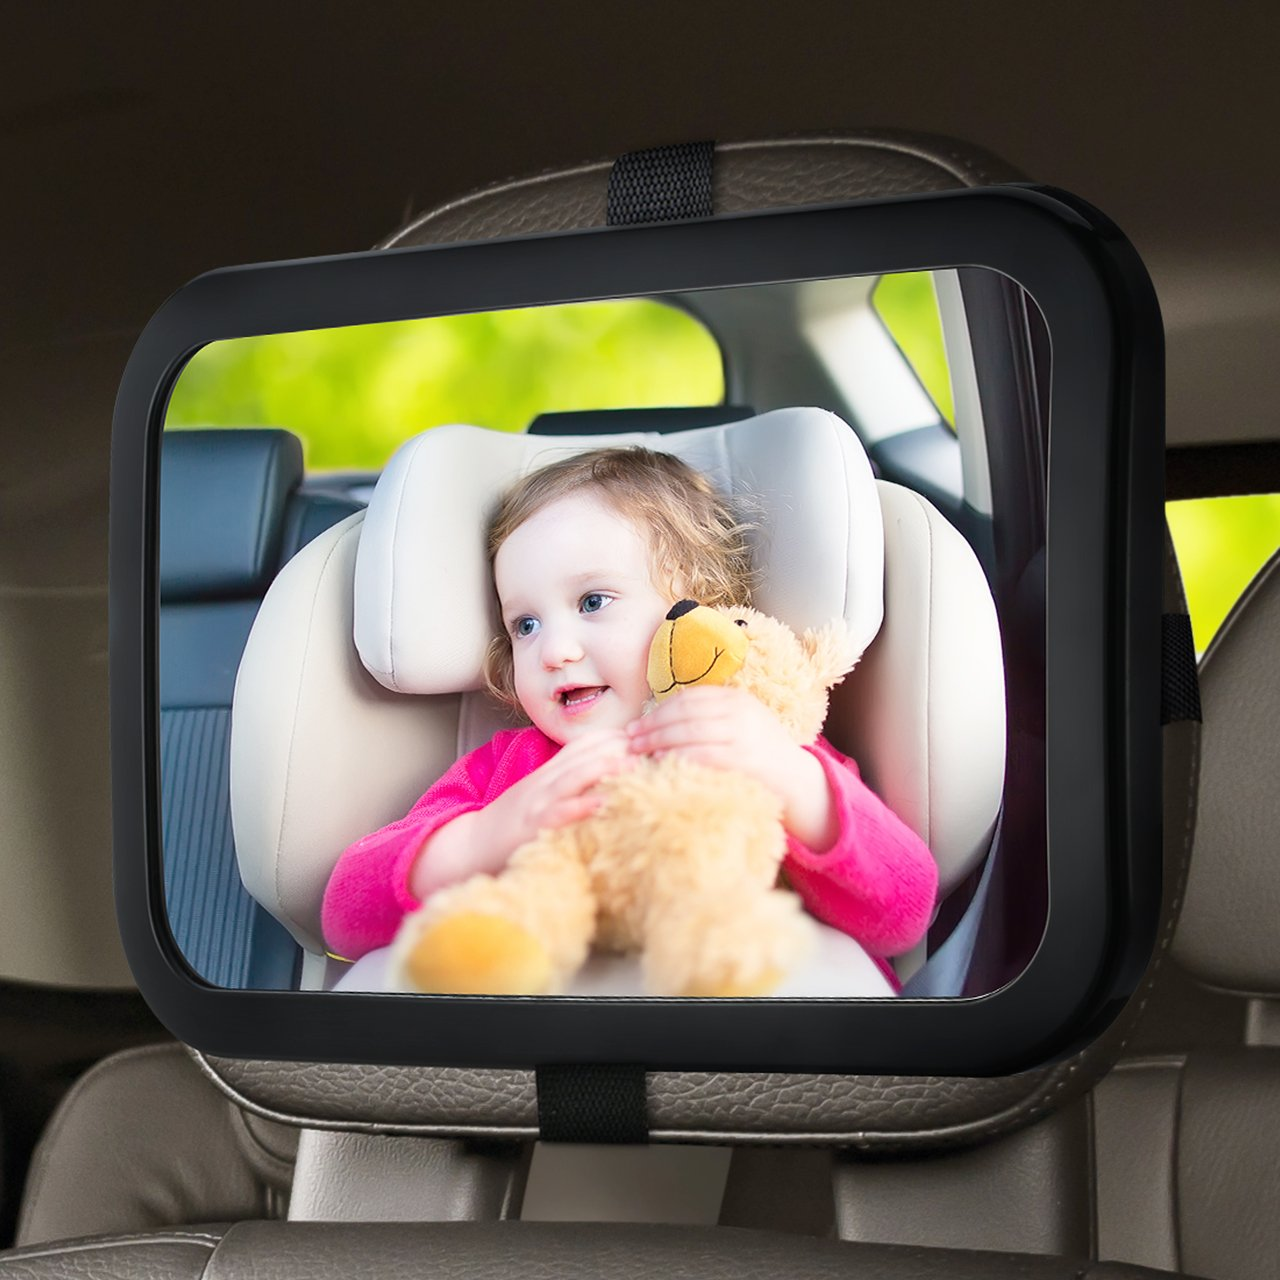 Baby Backseat Mirror OMorc Rear View Car Seat With Adjustable Straps And Tilt Function Clear Of Infant In Facing